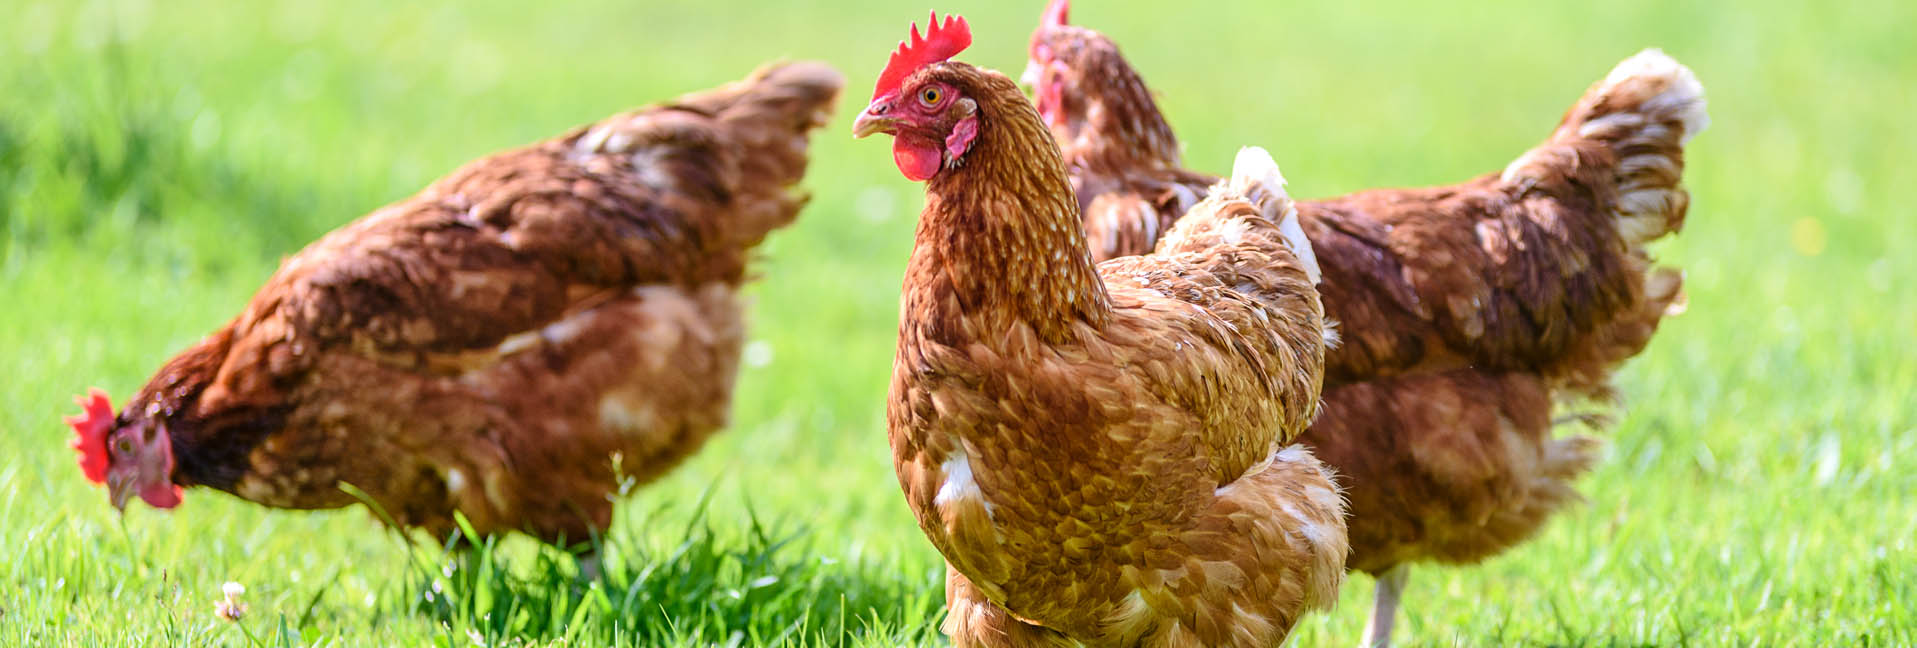 Coccidiosis In Chickens     Transmission, diagnosis, and treatment